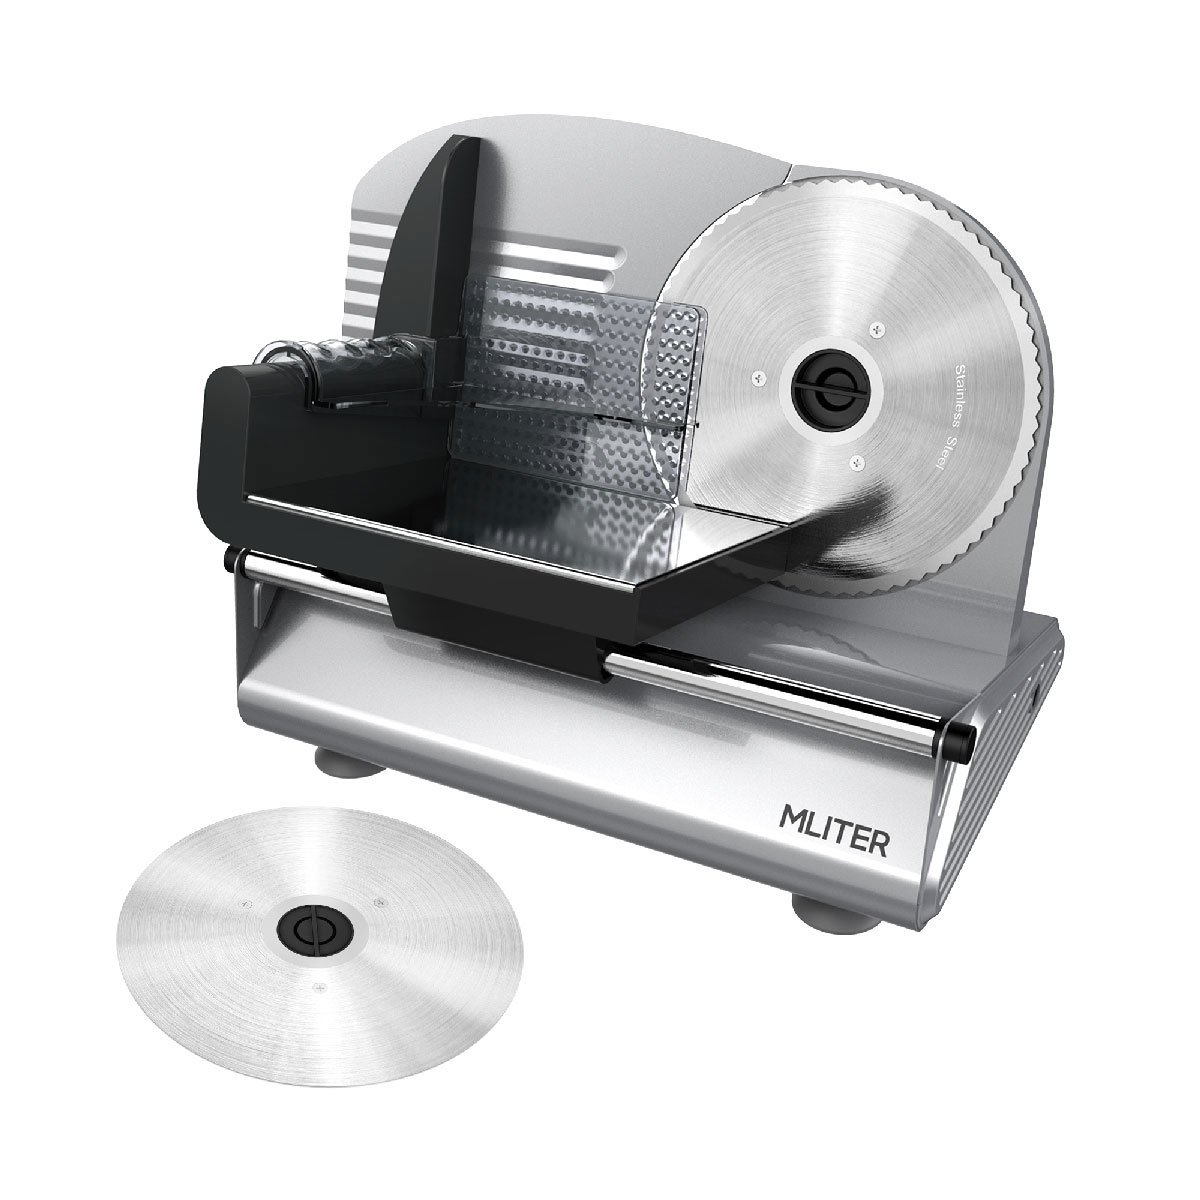 MLITER 150W Electric Food & Meat Slicer Machine with 2 Blades - 7.5 Inch Serrated & Non-serrated Stainless Steel Blades - Thickness Adjustable for Bread, Cheese, Ham, Vegetables, etc - Silver